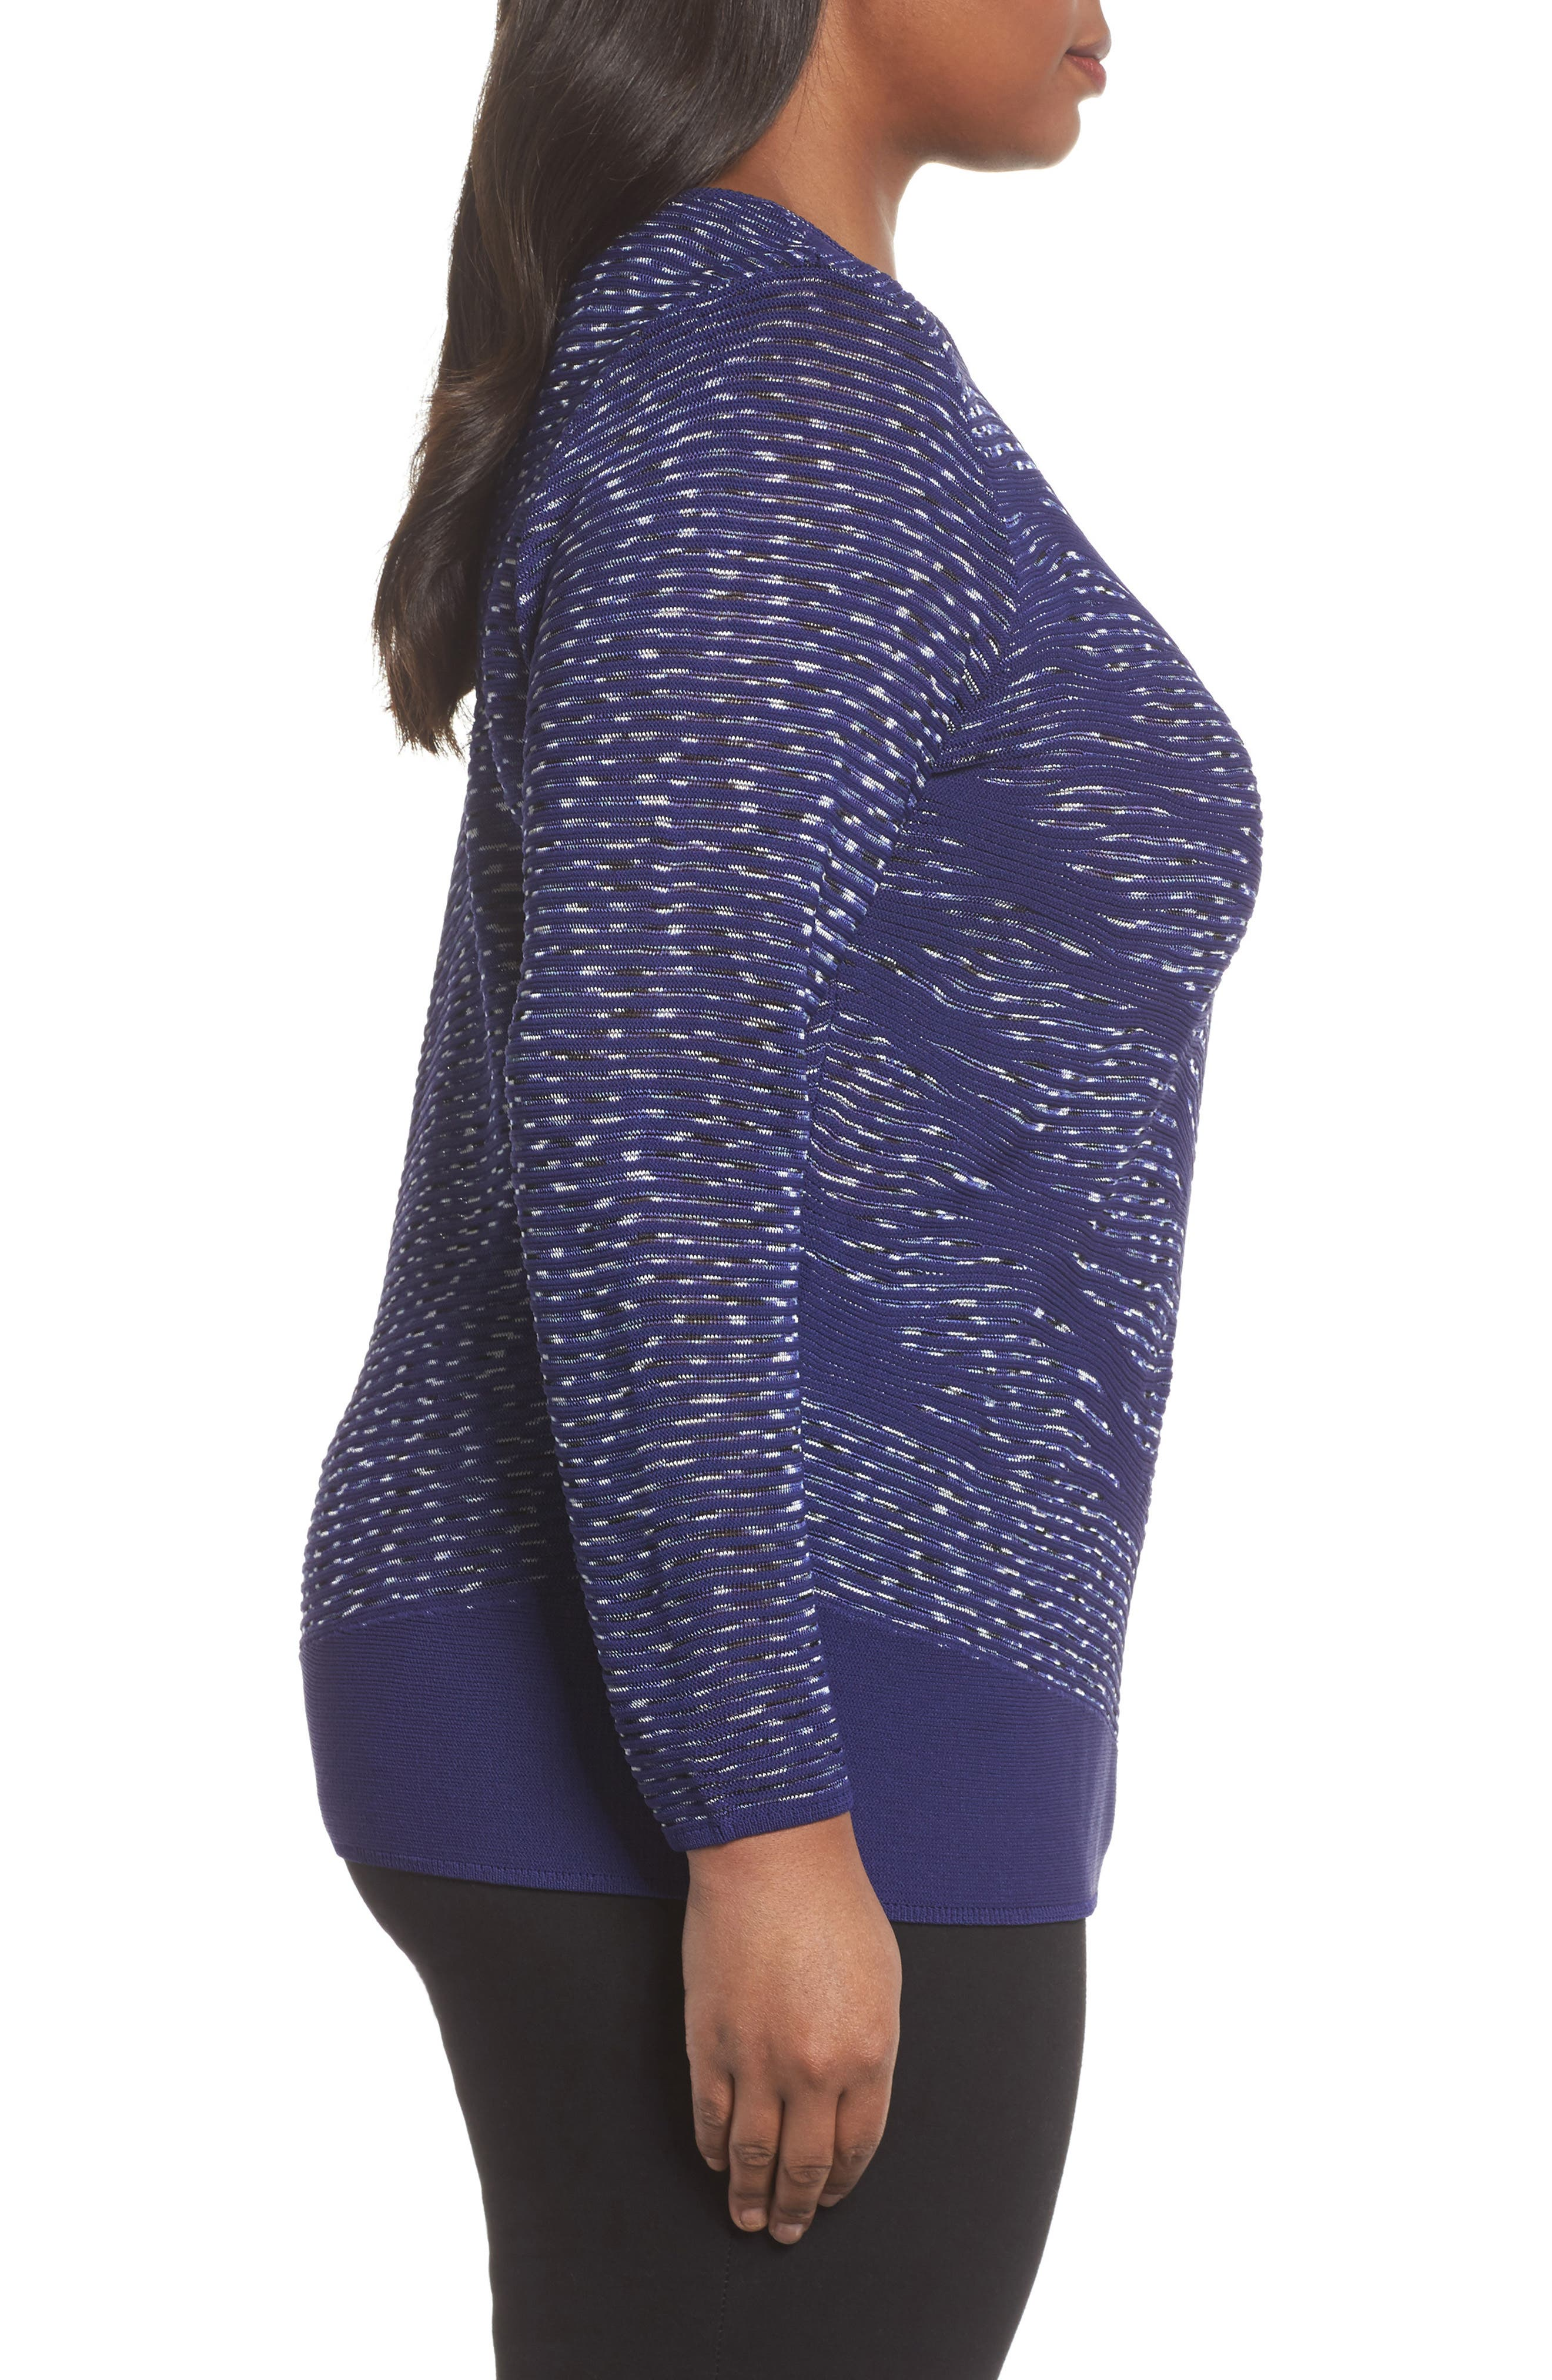 This Is Living Knit Top,                             Alternate thumbnail 6, color,